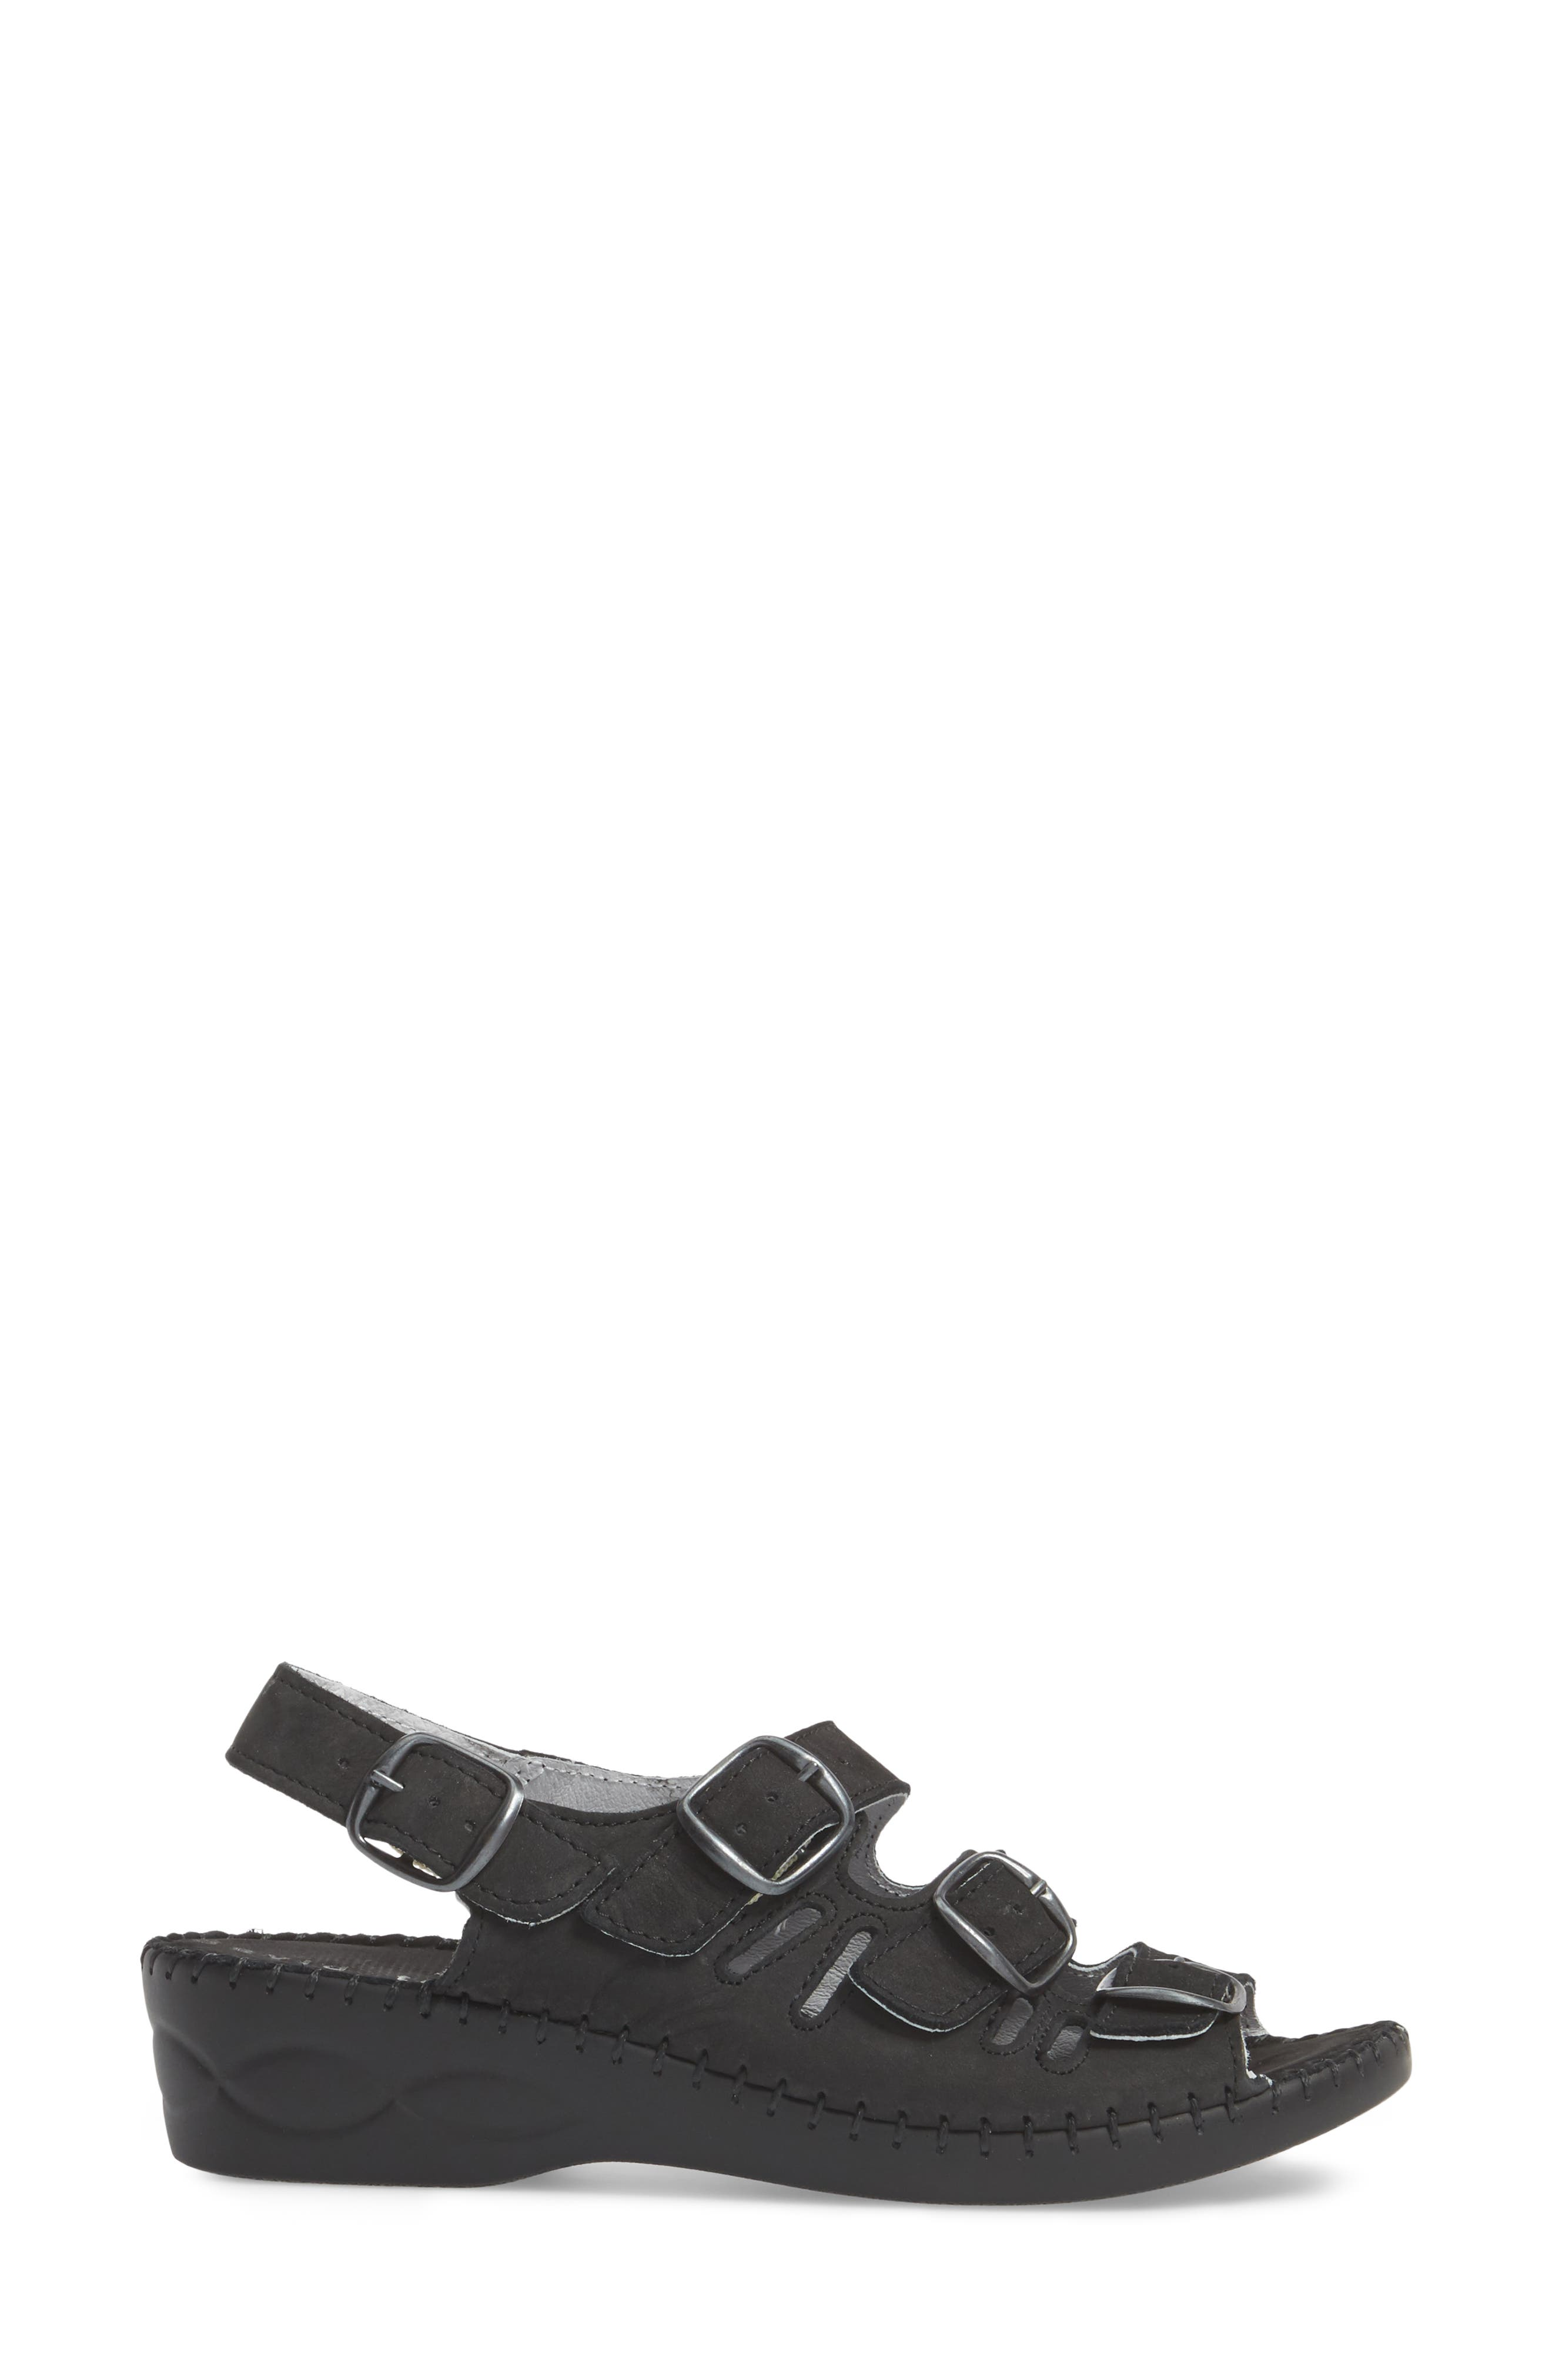 DAVID TATE, Luna Slingback Wedge Sandal, Alternate thumbnail 3, color, BLACK NUBUCK